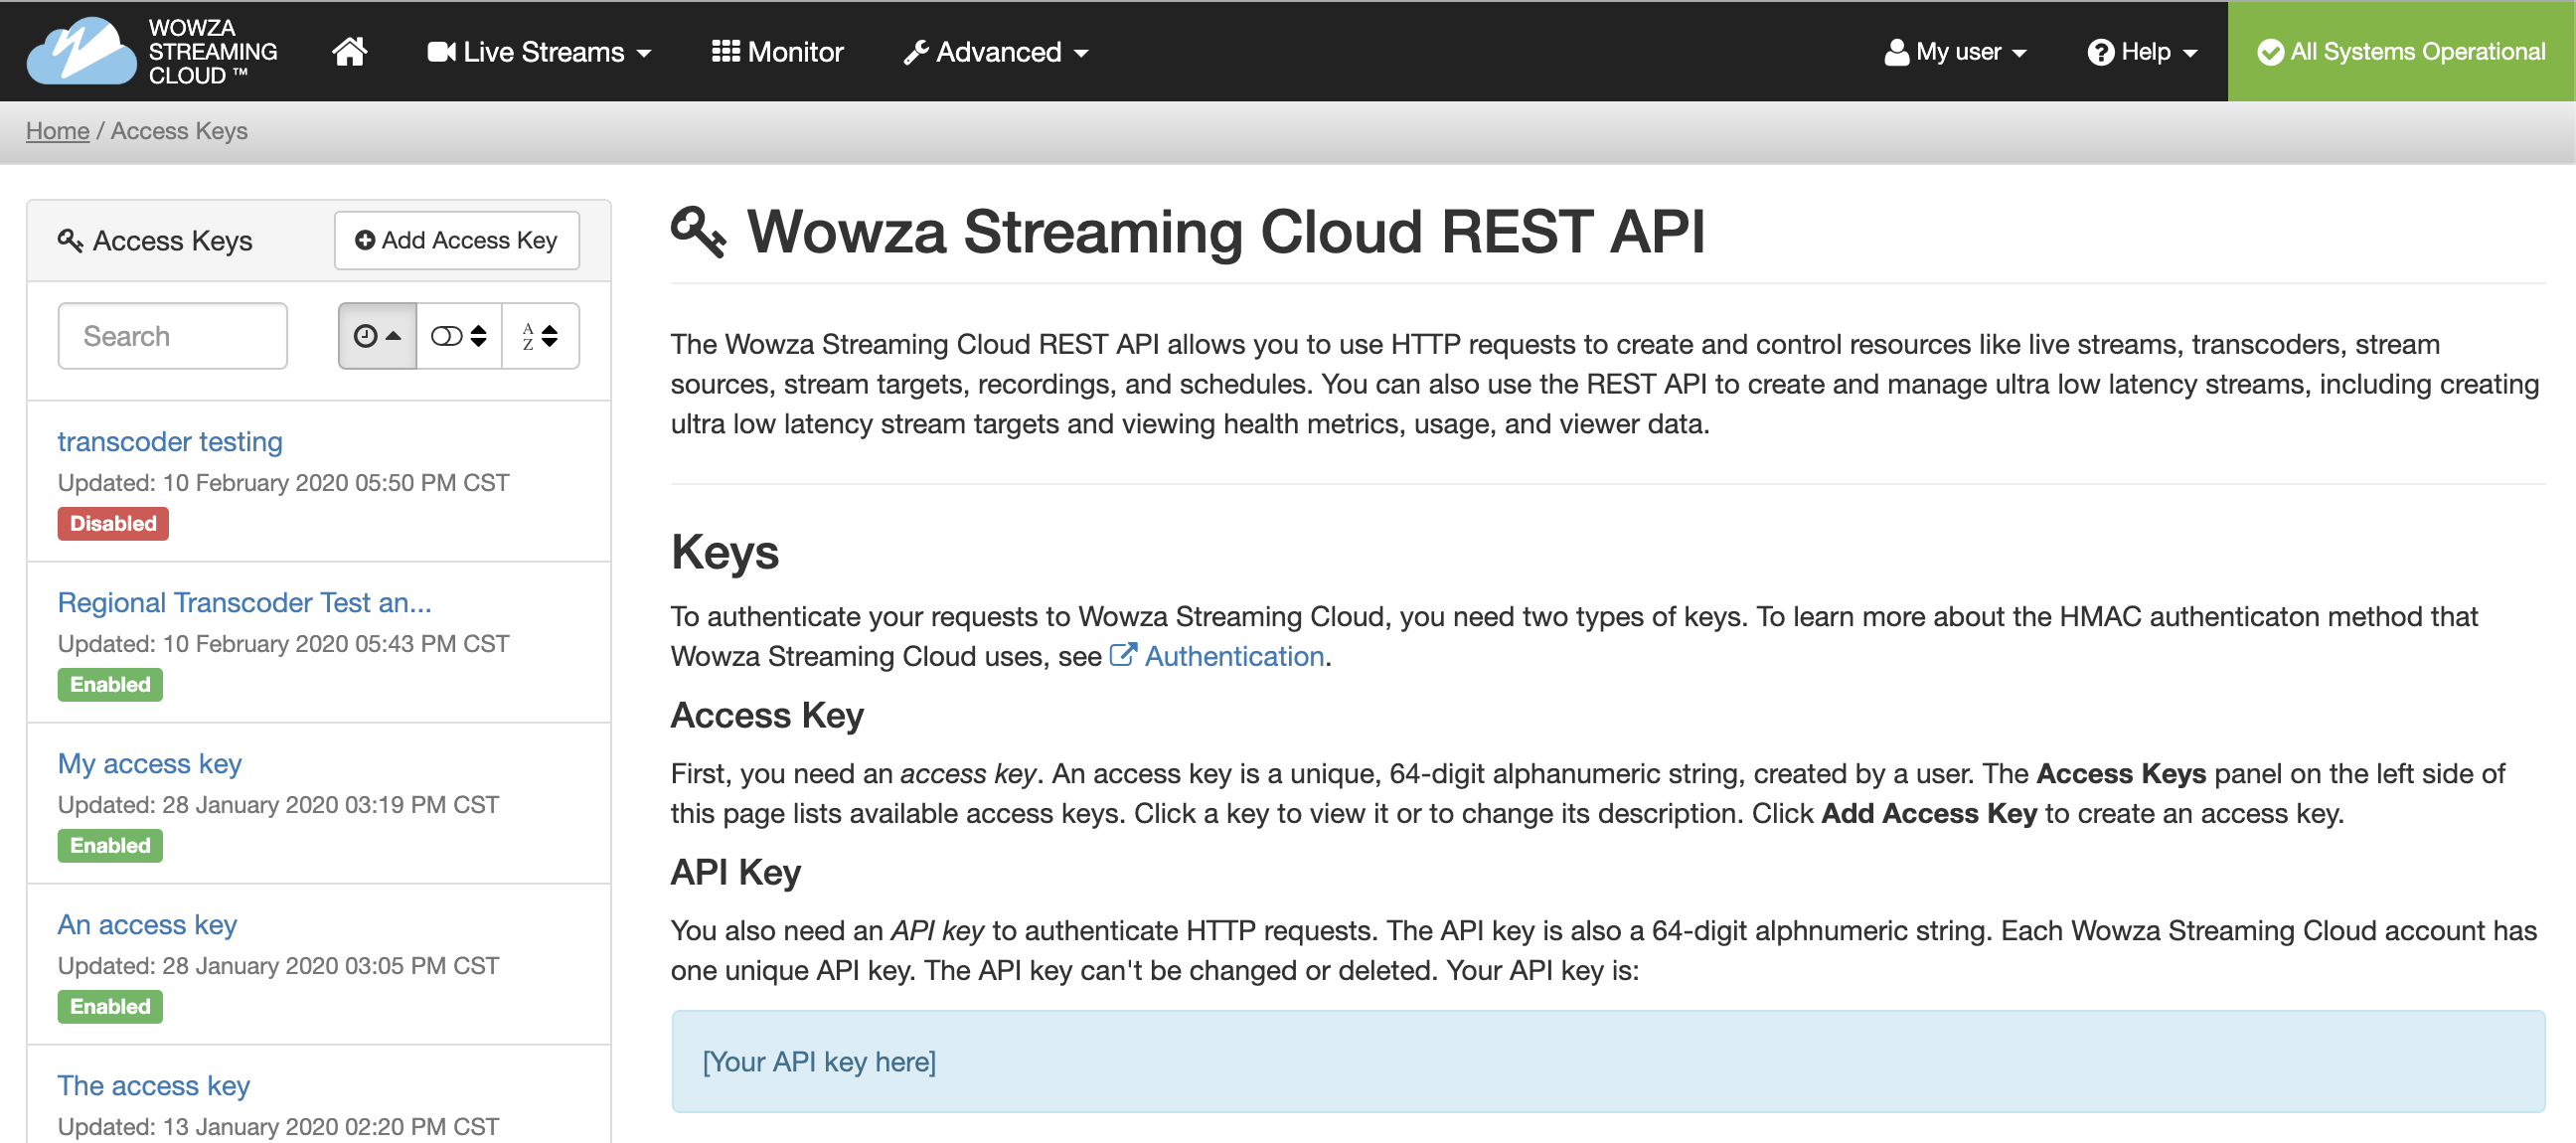 Access the API page in Wowza Streaming Cloud